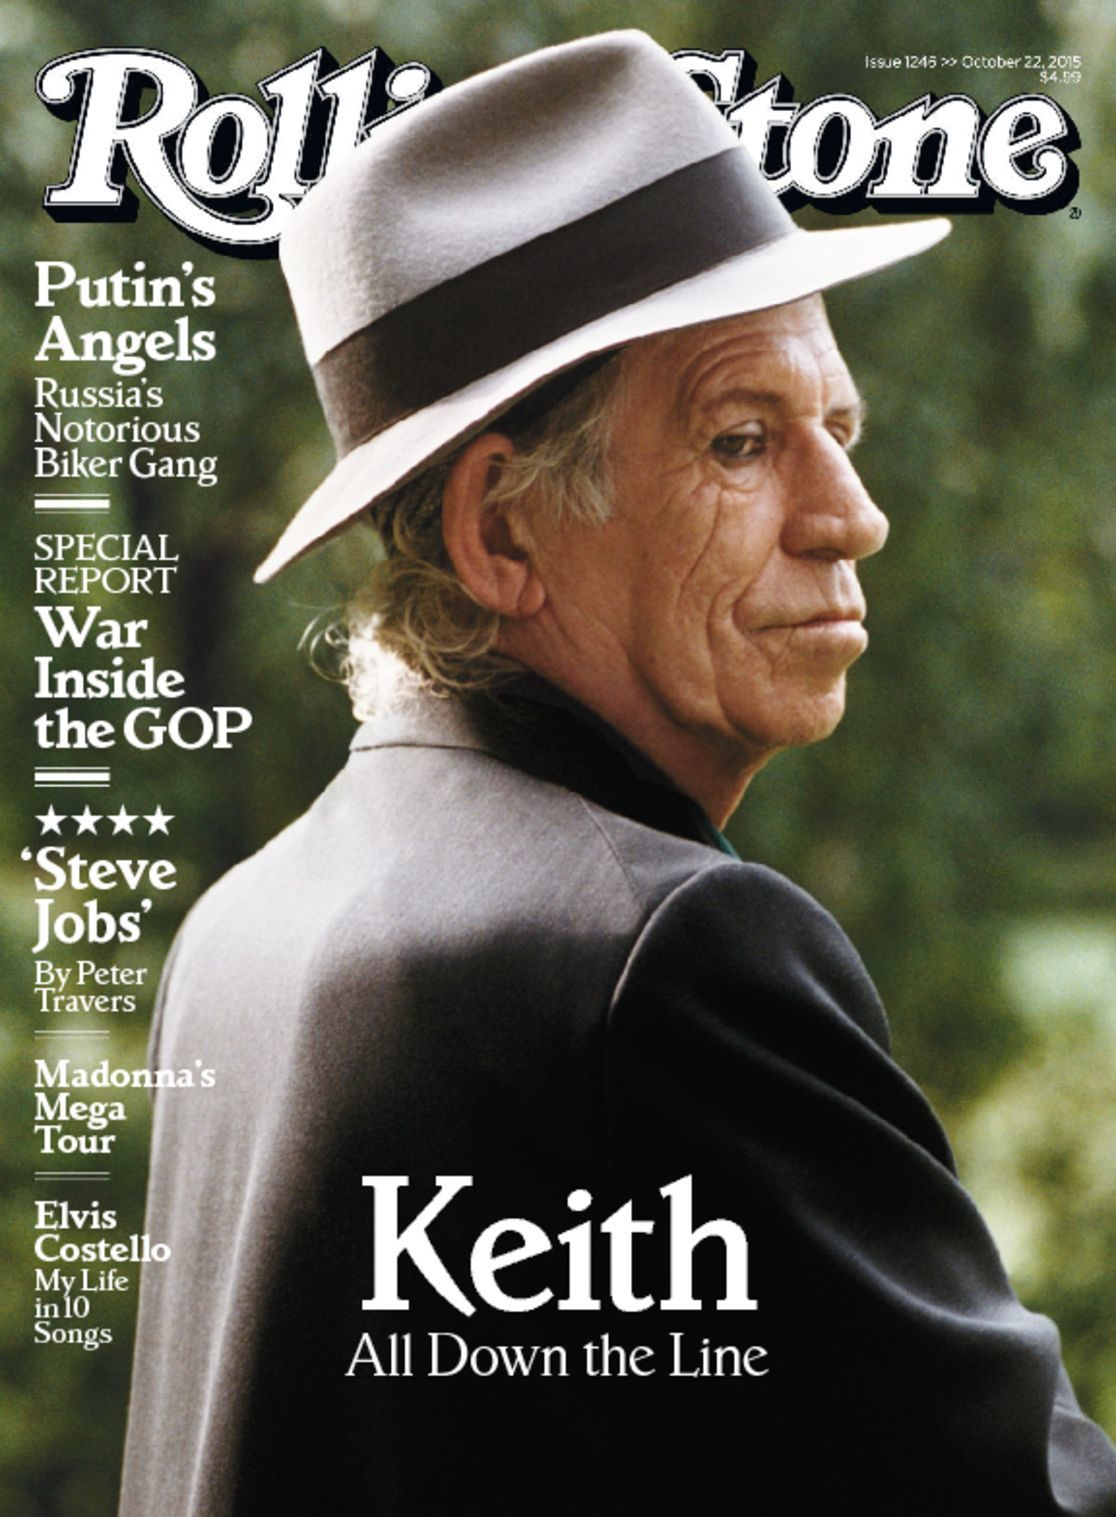 Wed Nov 25th Subscribe to Rolling Stone, just $3.89/year from DiscountMags.com!